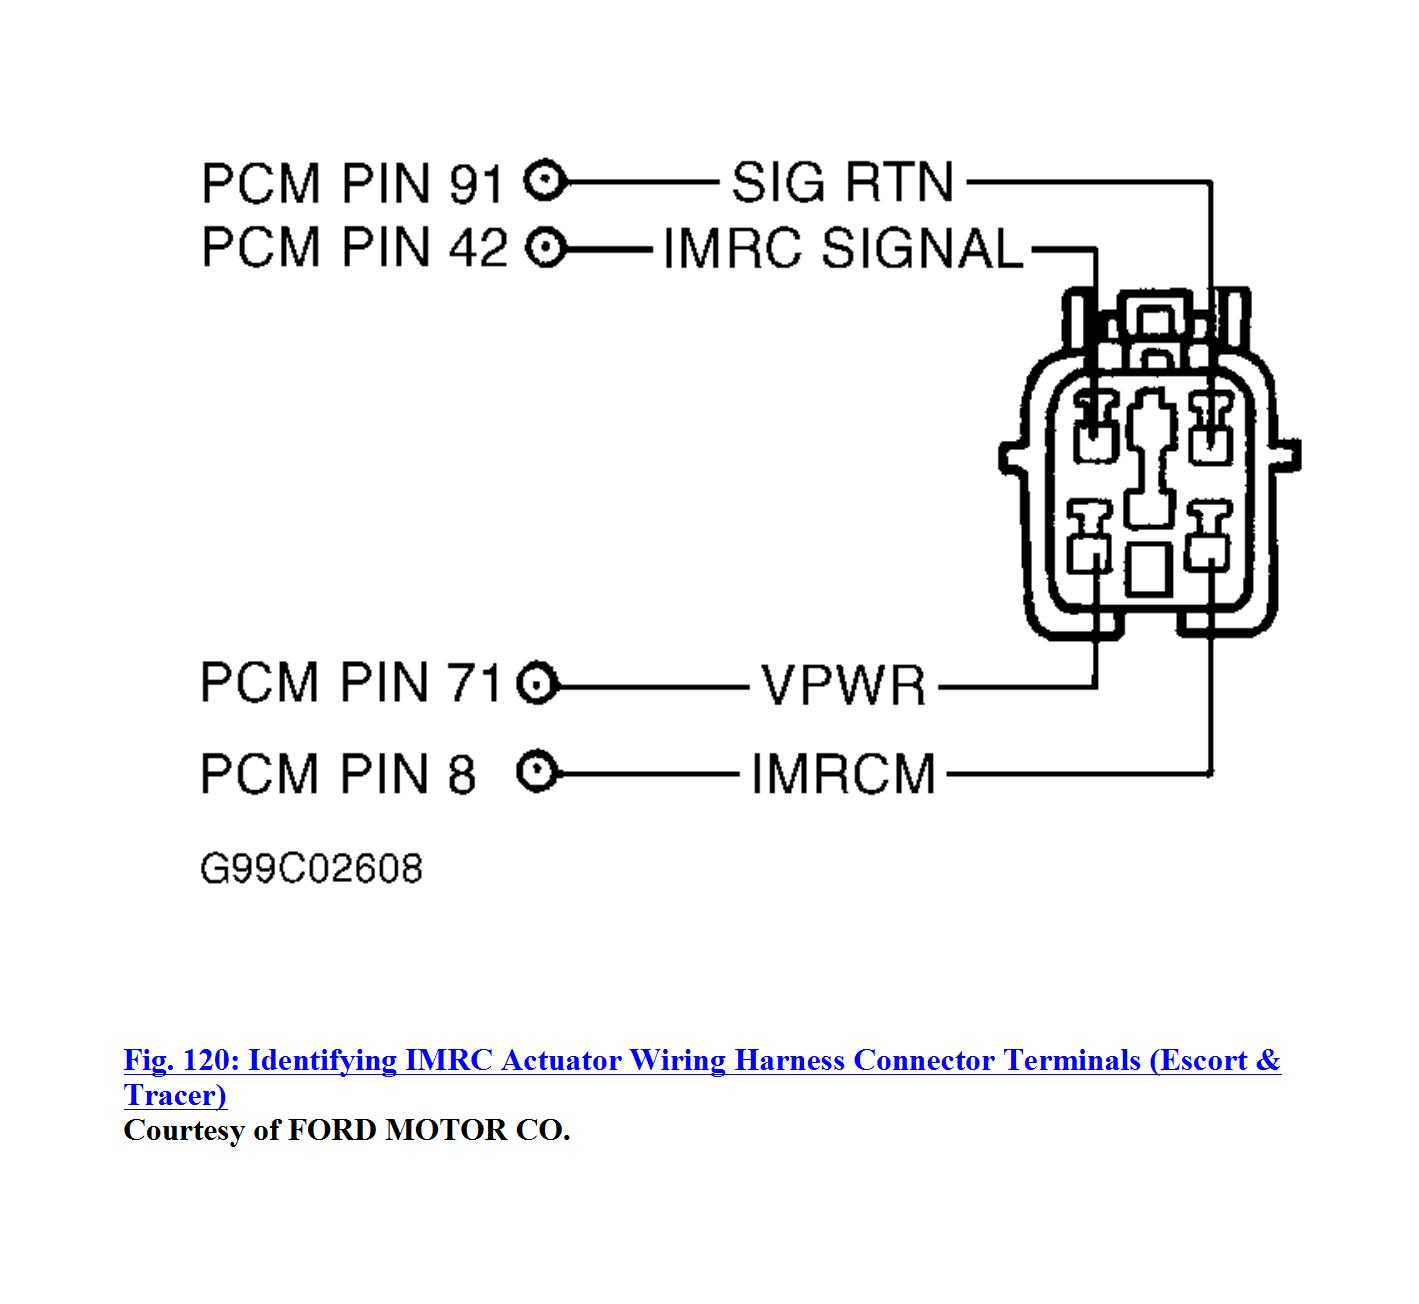 Ford Taurus 1999 Trouble Code P1518 Intake Manifold 2004 Expedition Wiring Diagram Connector 213 Graphic